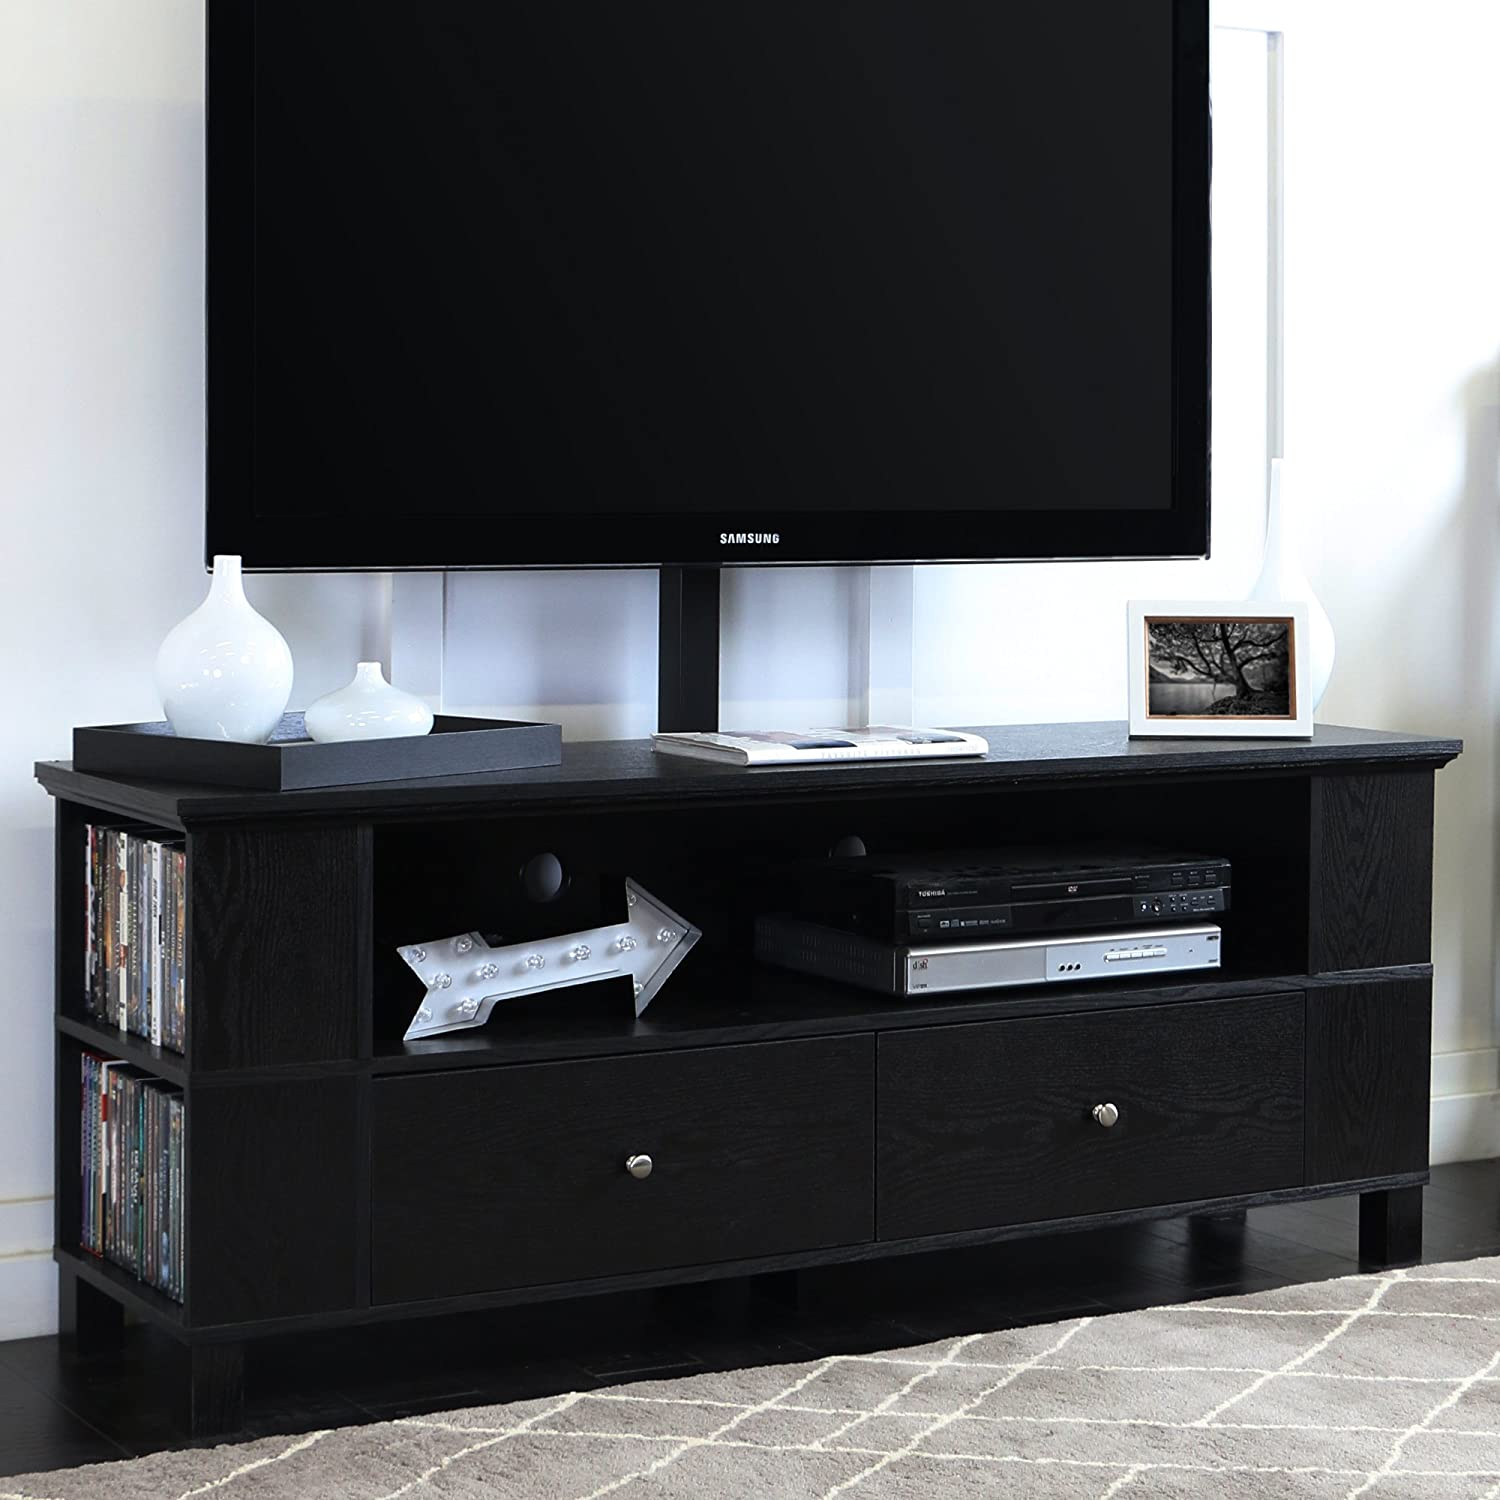 Amazon Com Walker Edison 58 Black Wood Storage Modern Tv Stand Console Cabinet With Mount For Flat Screen Tv S Up To 65 Entertainment Center Furniture Decor